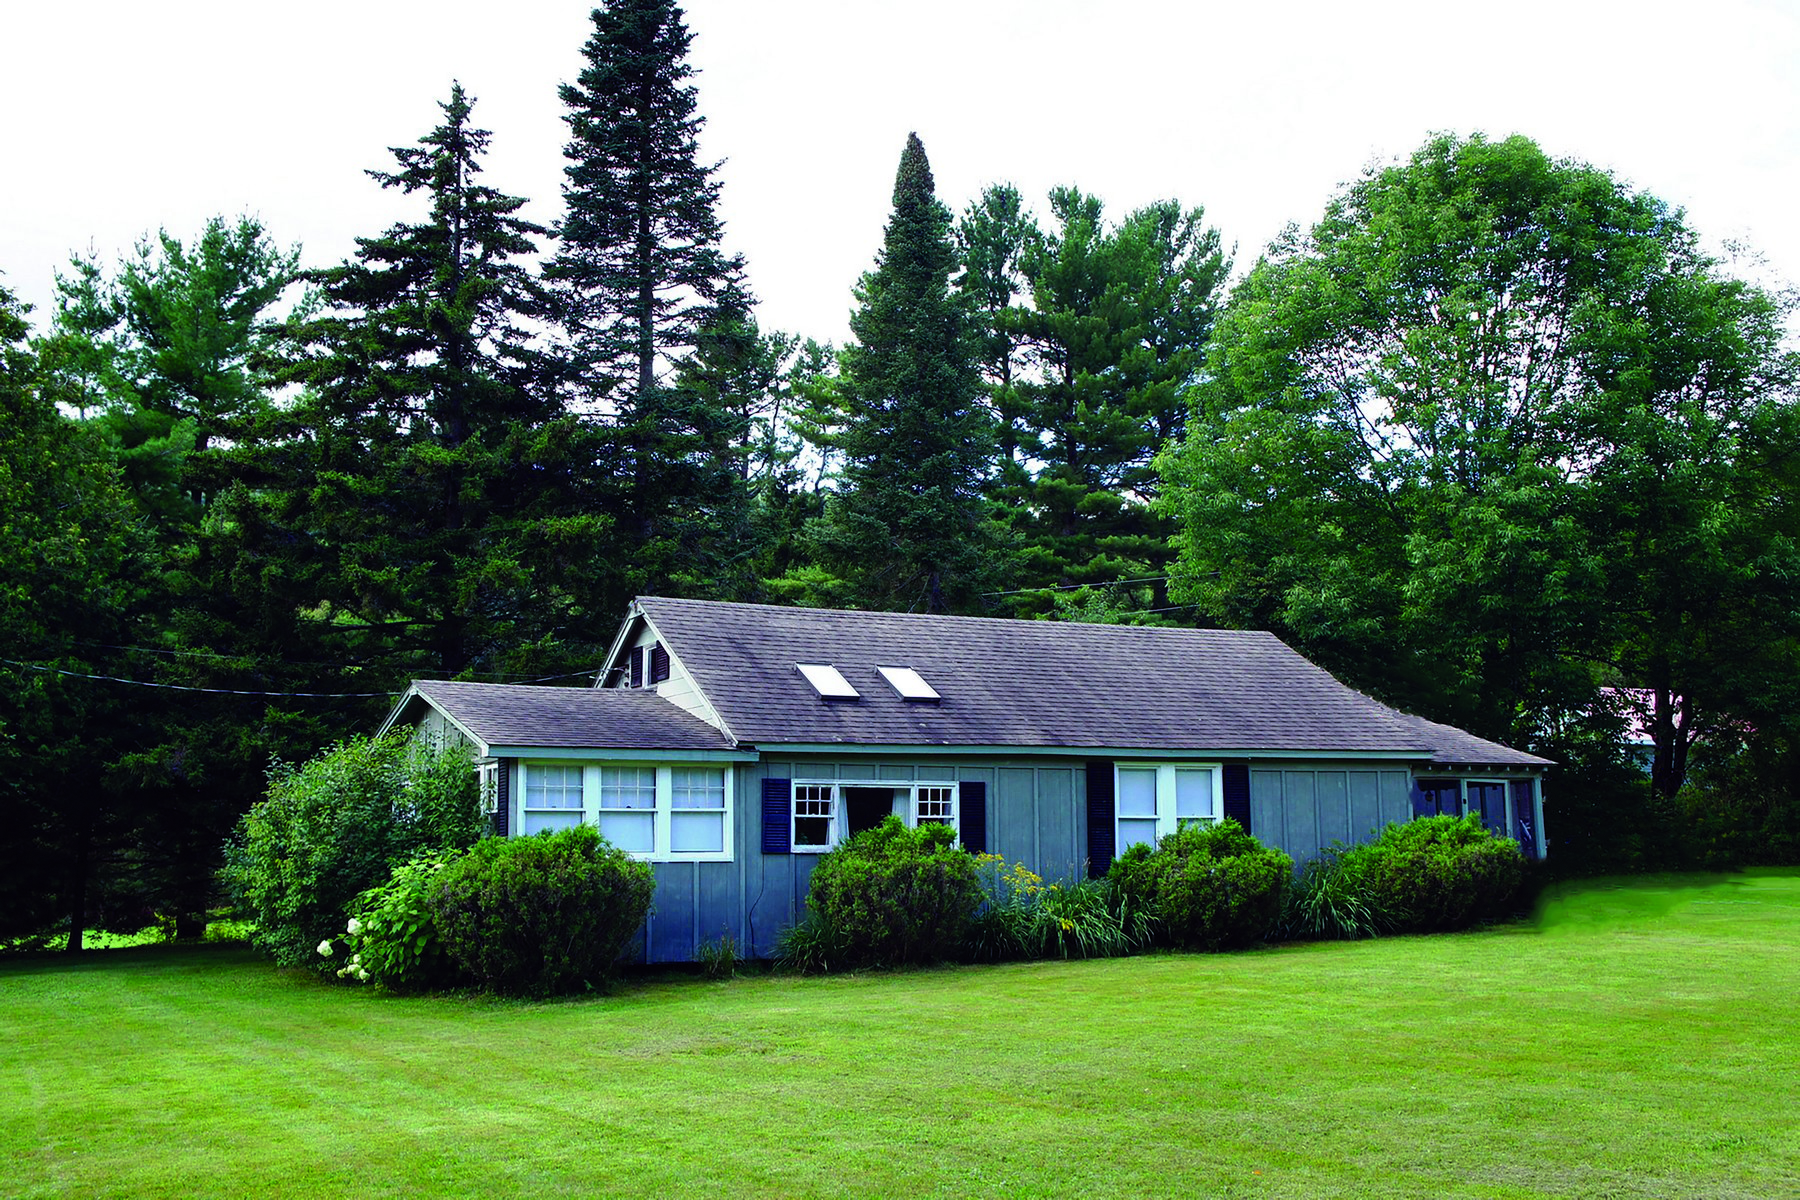 Single Family Home for Sale at 218 Beach Road, Elmore 218 Beach Rd Elmore, Vermont 05474 United States